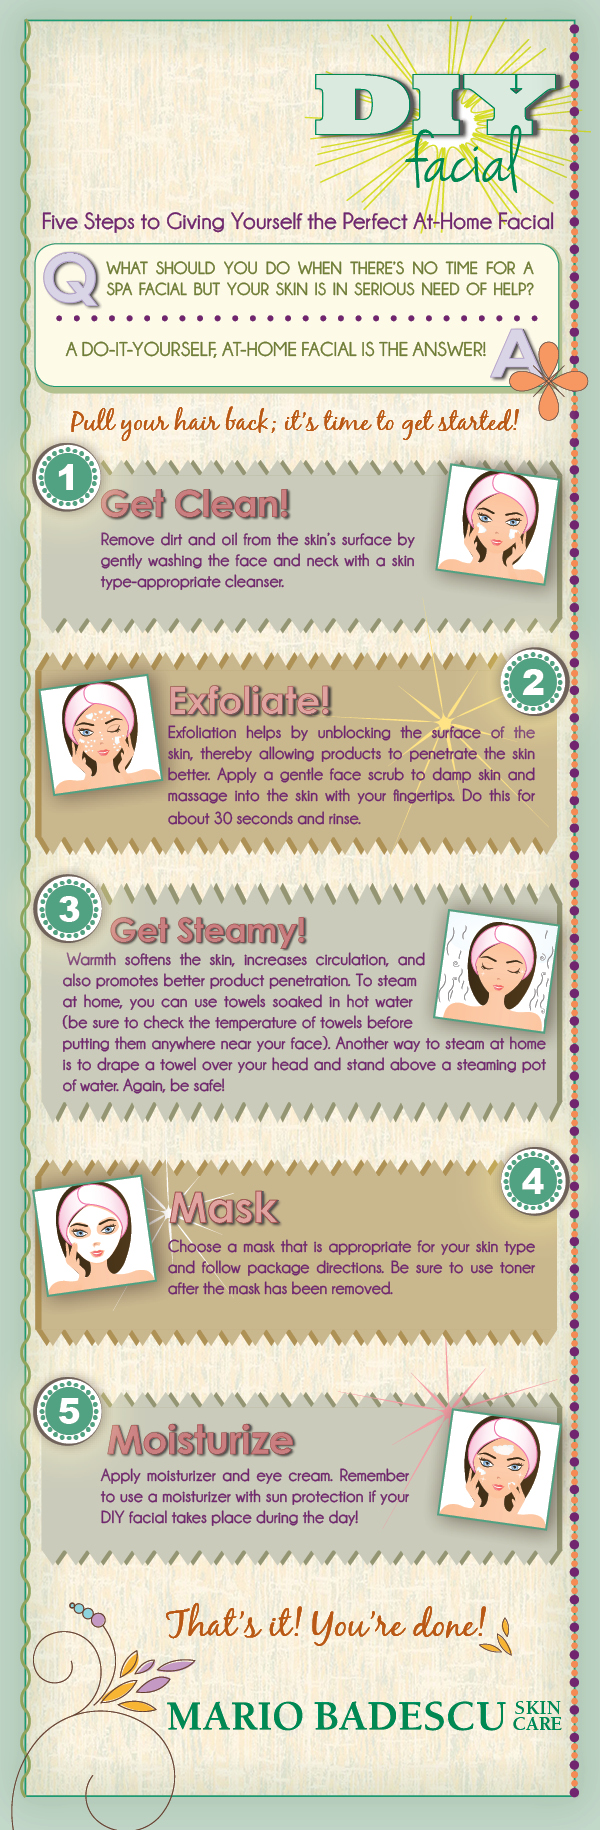 Diy facial five steps to the perfect at home facial infographic solutioingenieria Choice Image